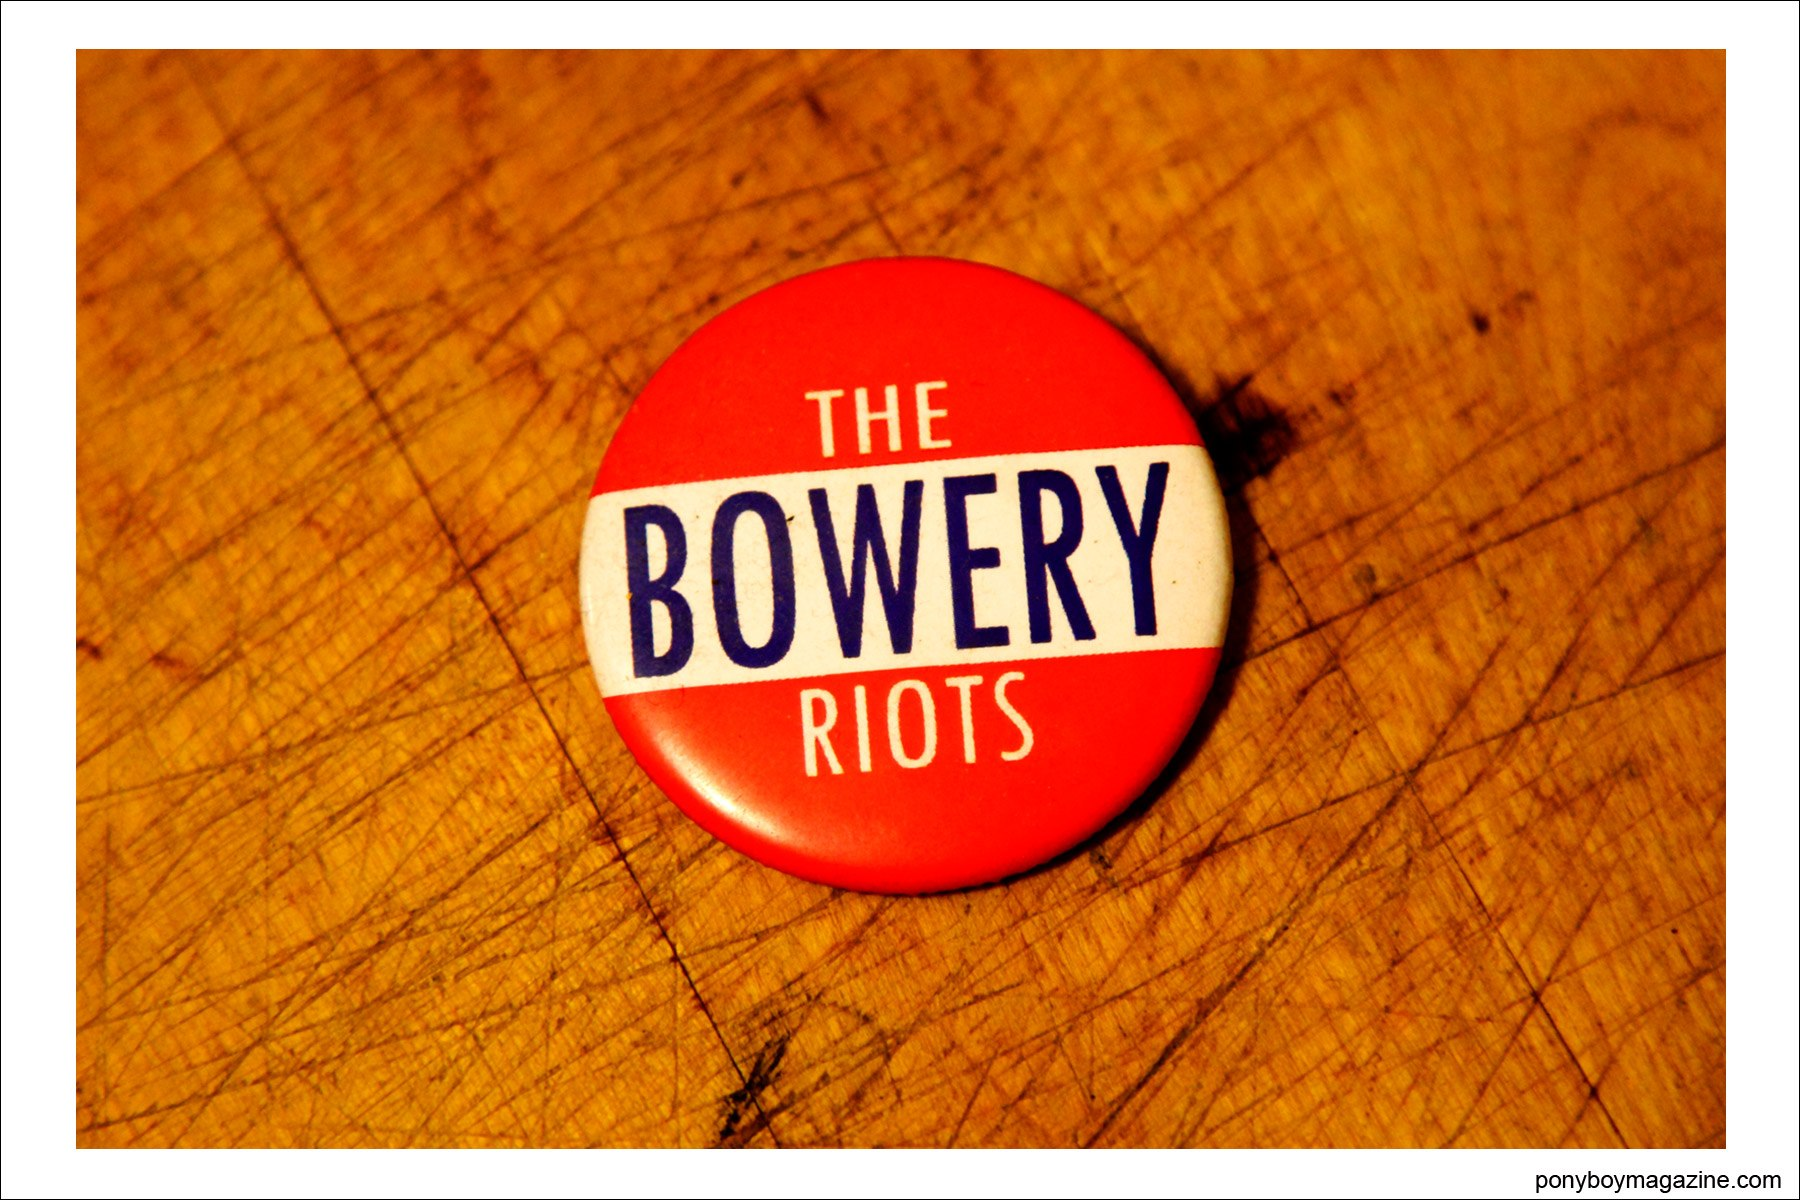 A Bowery Riots pin, property of musician Justin Dean Thomas. Ponyboy magazine